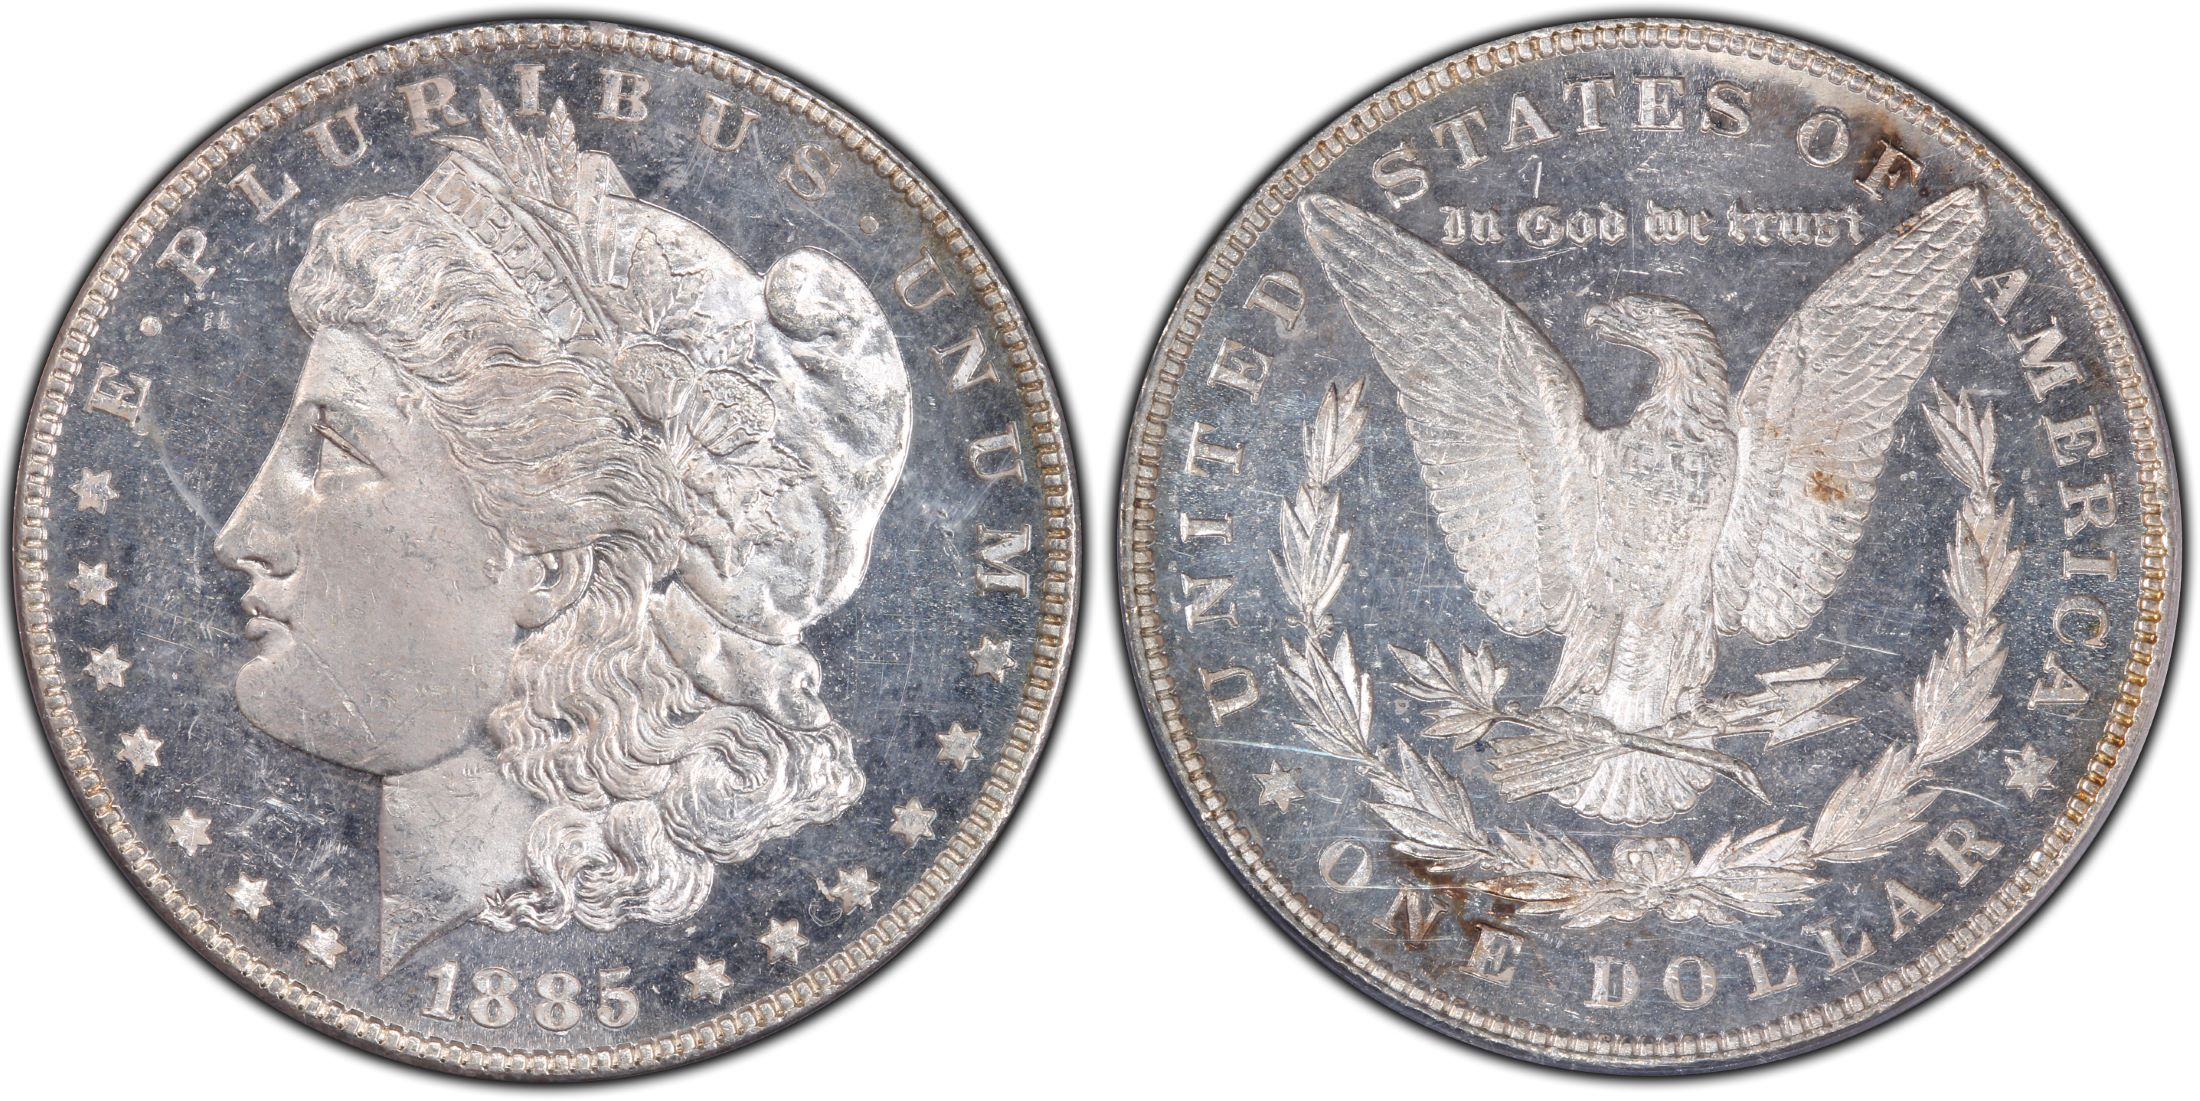 1885 $1 VAM 22 Dash, DM (Regular Strike) - PCGS CoinFacts